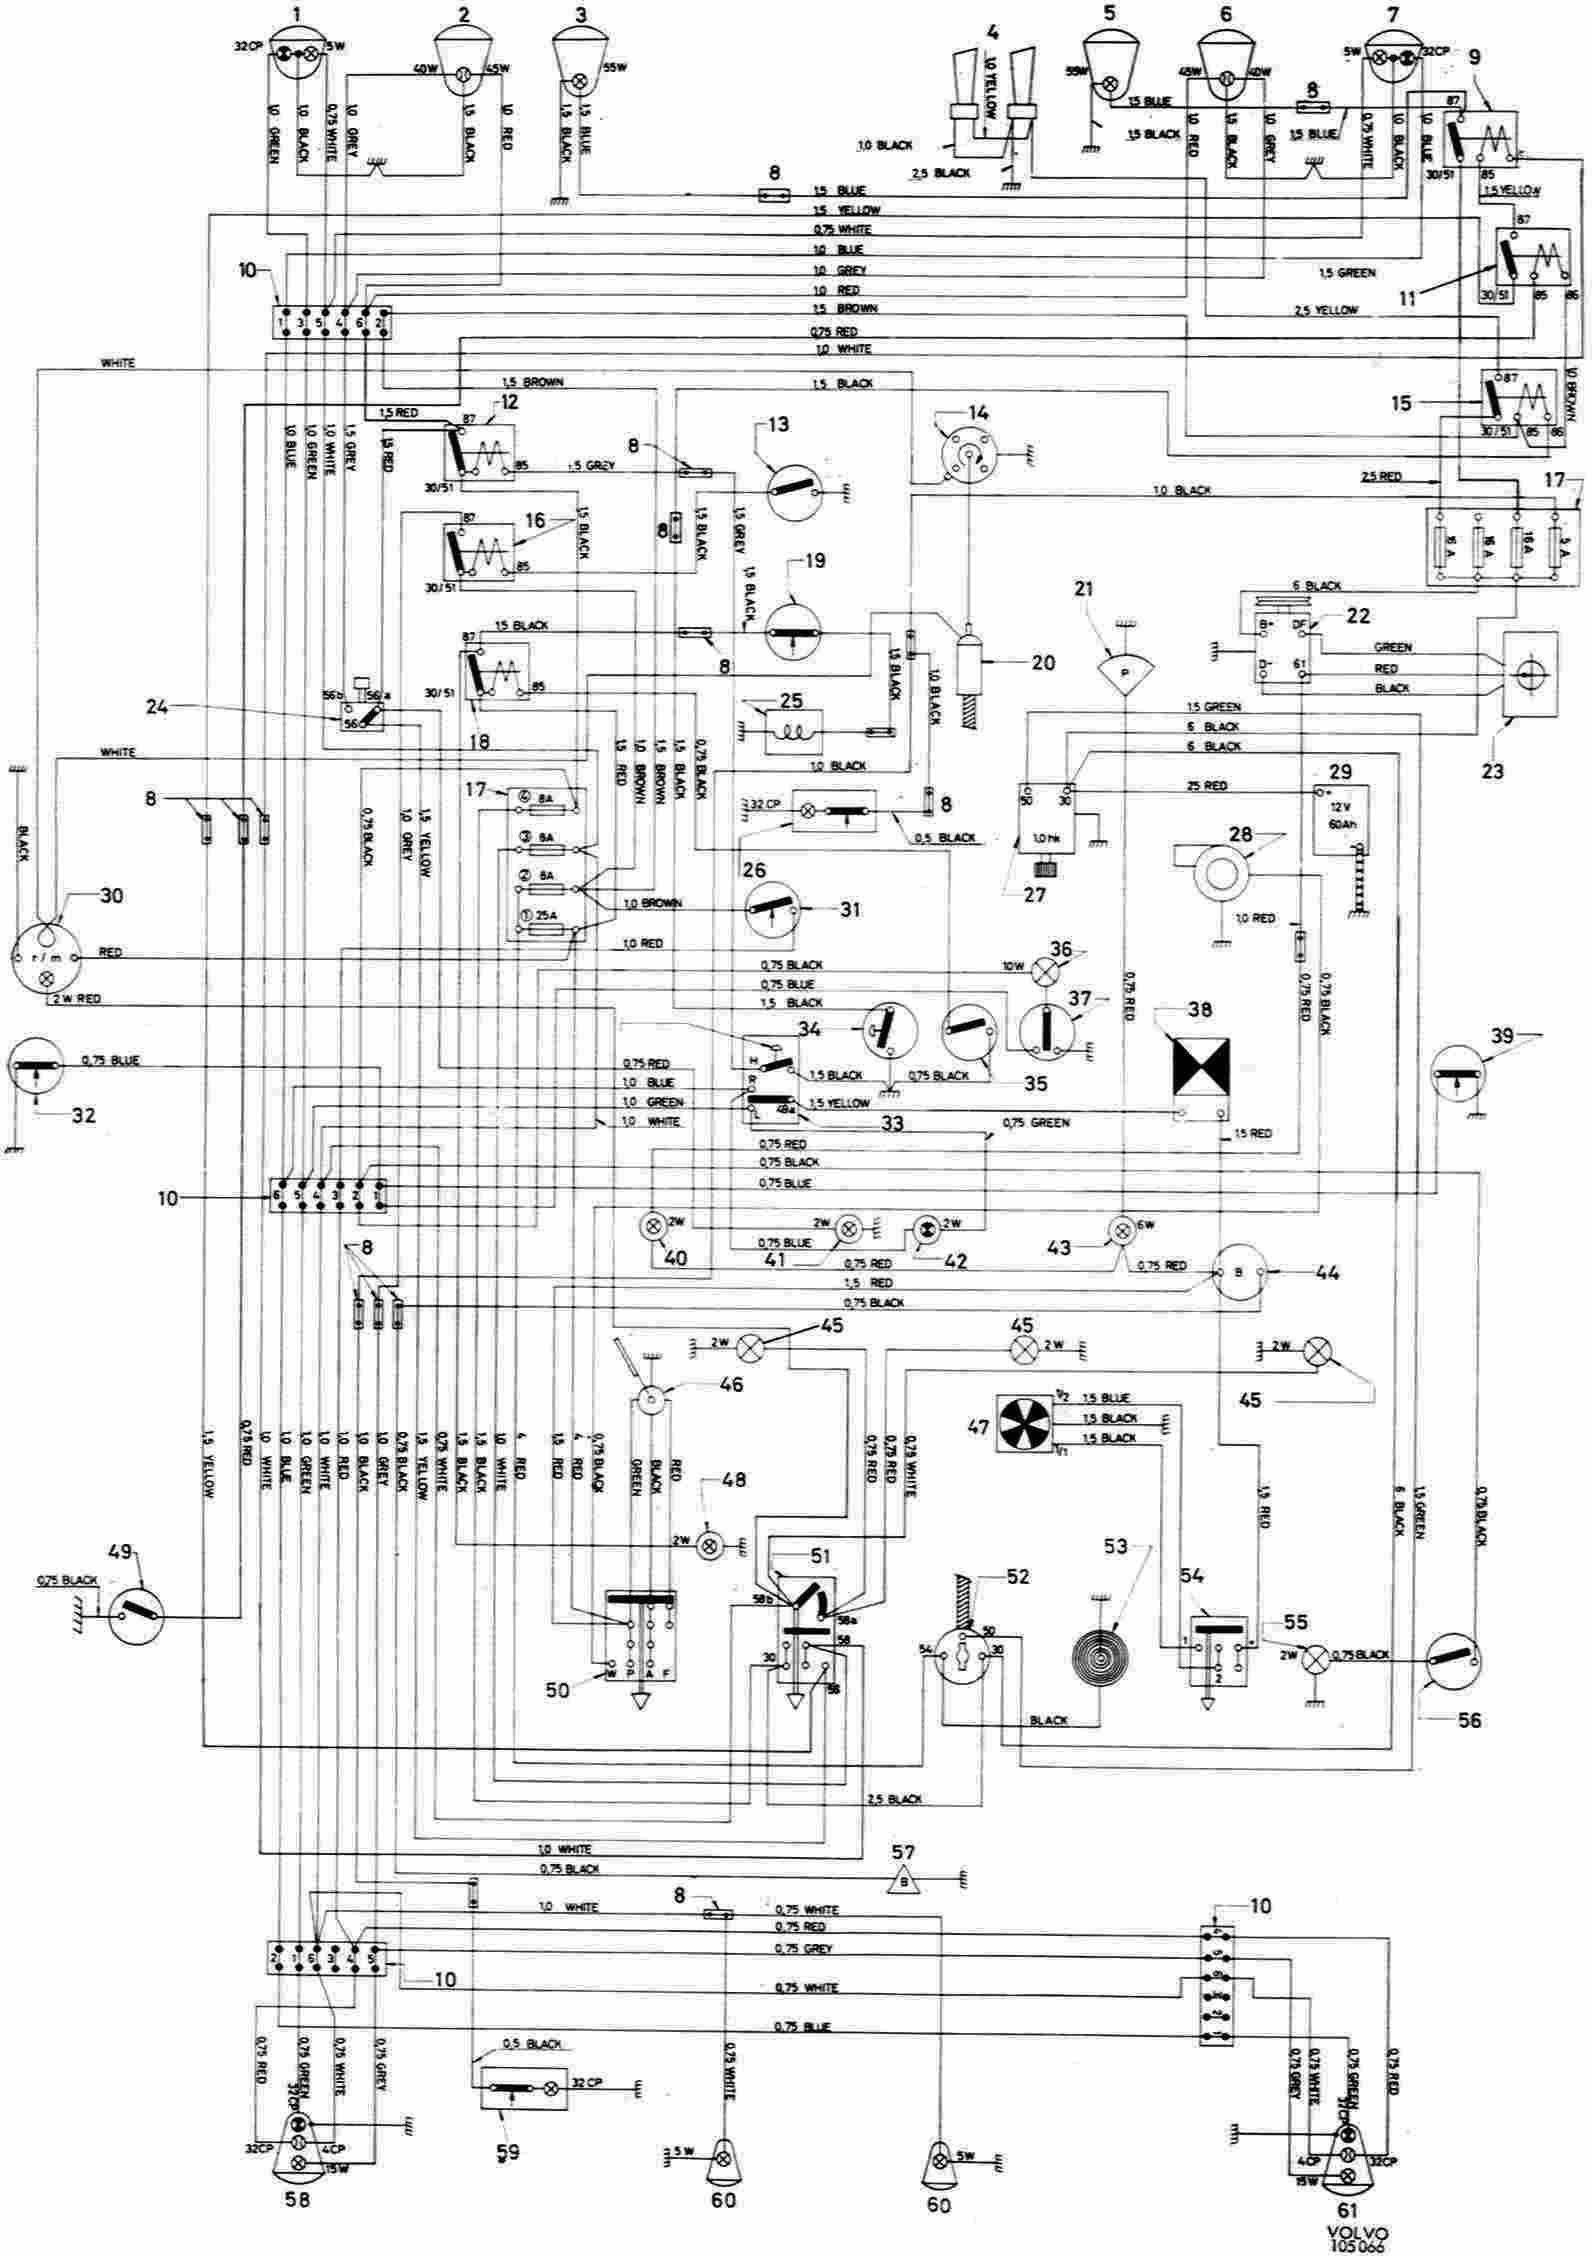 s40 wiring diagram radio wiring diagram and schematics rh rivcas org